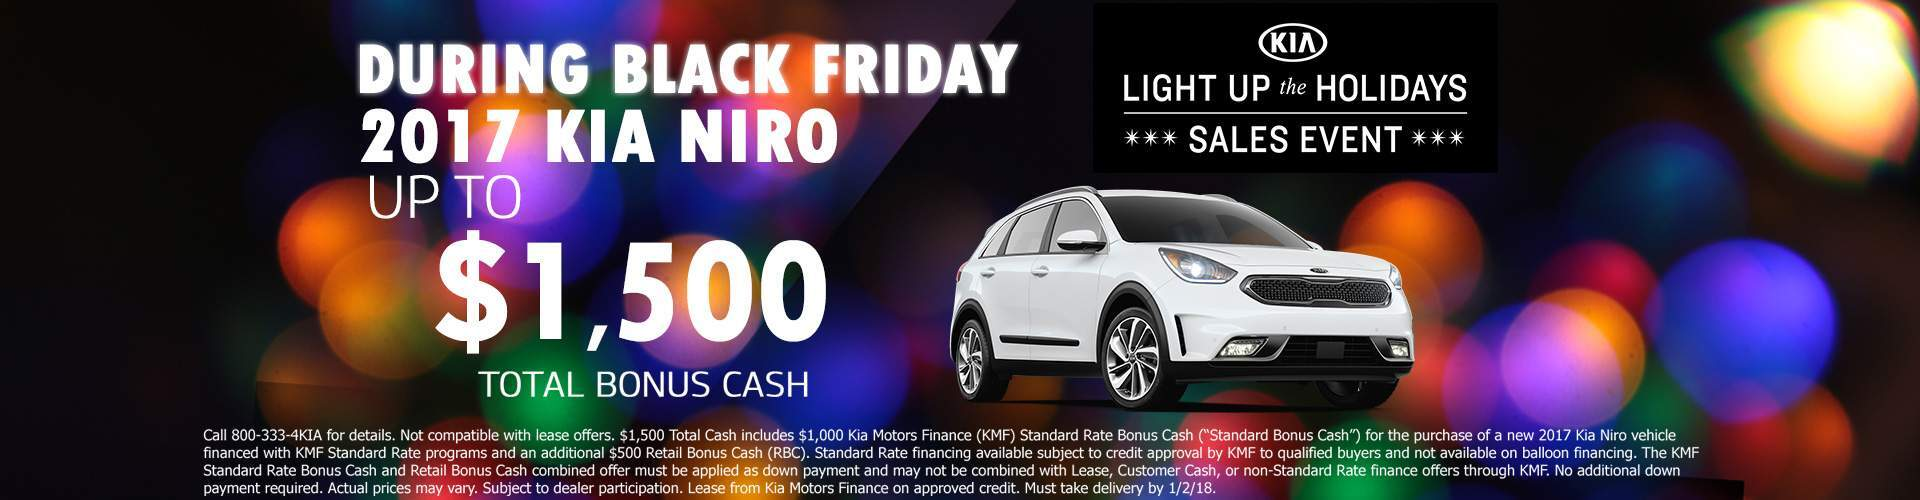 Black Friday 2017 KIA Niro